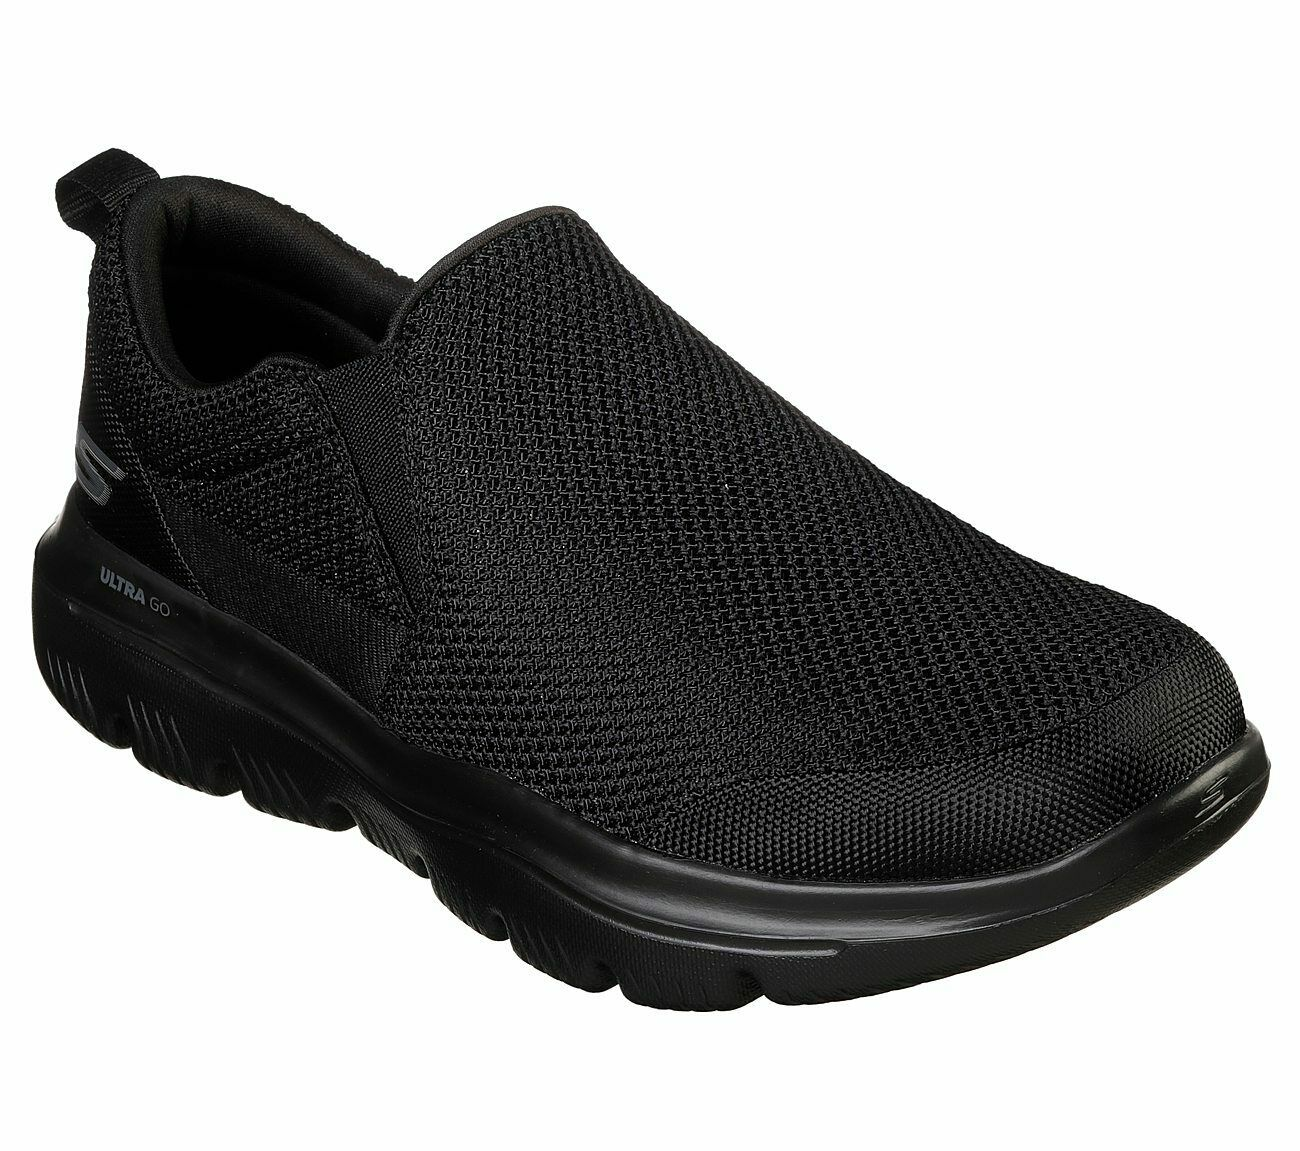 Skechers Extra Wide Fit Black shoe Men Comfort Soft Slip On Casual Go Walk 54738